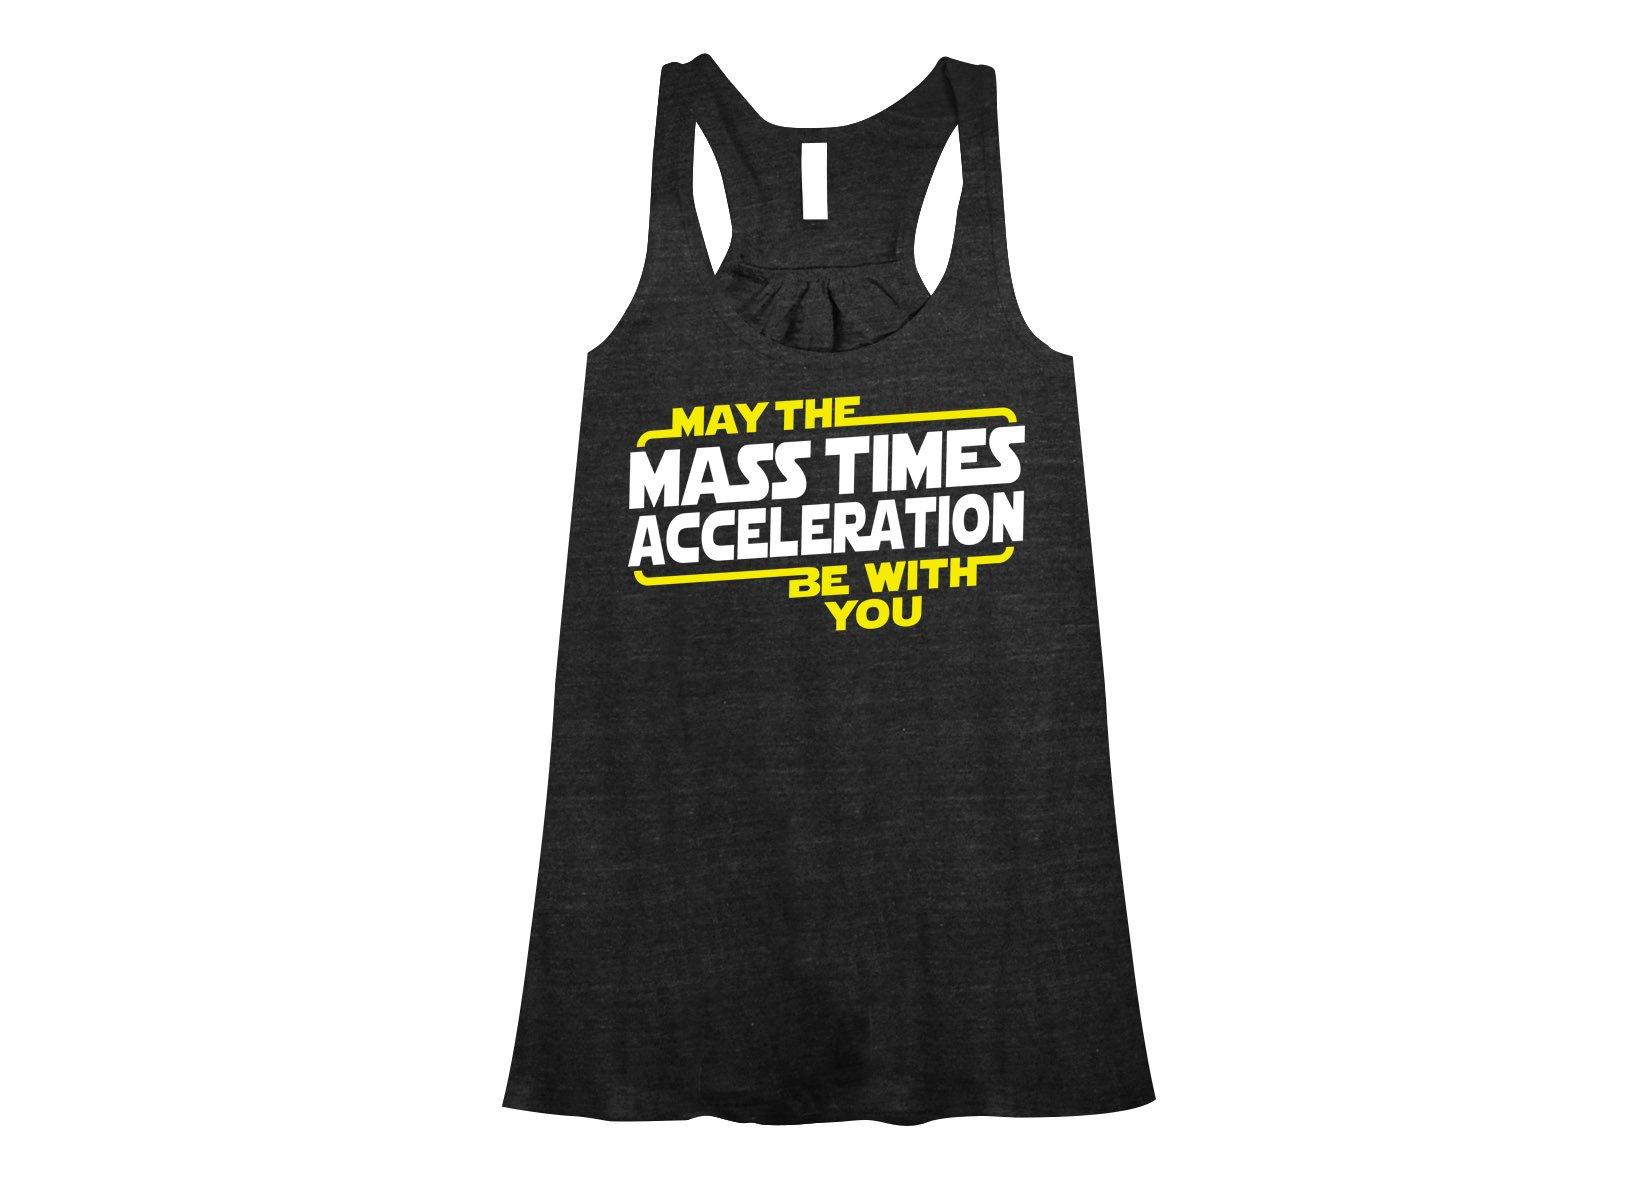 May The Mass x Acceleration on Womens Tanks T-Shirt